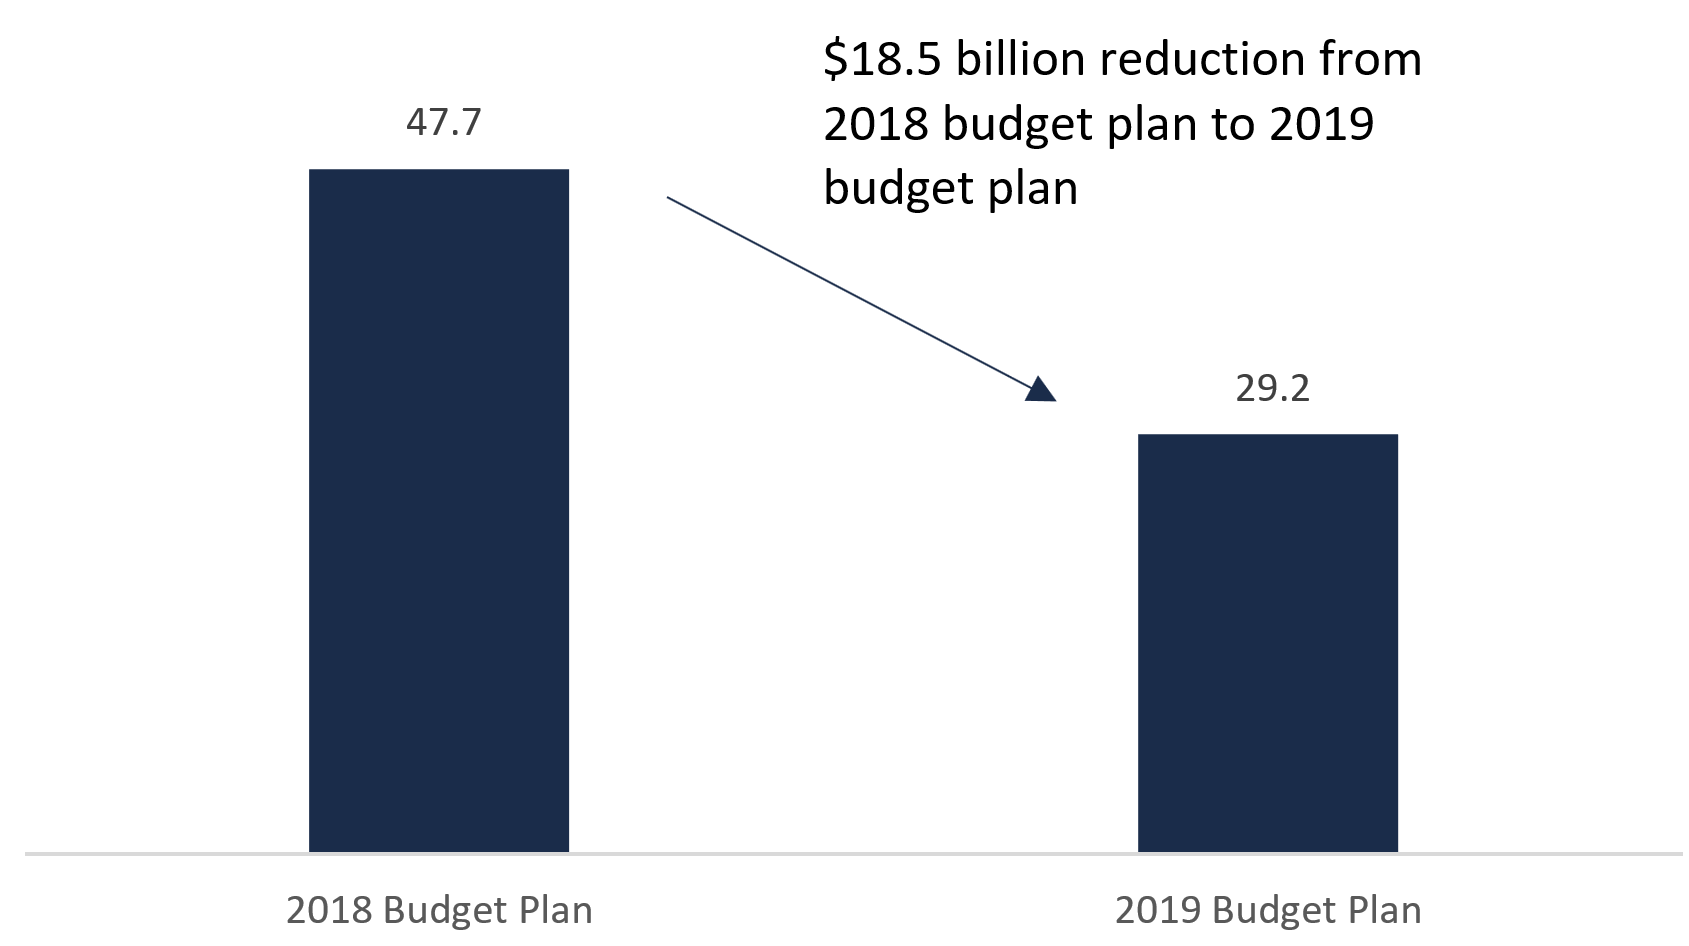 This figure shows the projected transit capital spending from 2019-20 to 2023-24 as stated in the 2018 budget plan and the 2019 budget plan in billions of dollars. The figure shows that the 2018 budget plan transit capital spending projection was $47.7 billion and the transit capital spending projection from the 2019 budget plan is $29.2 billion. This chart highlights that there is an $18.5 billion reduction from the 2018 budget plan to the 2019 budget plan.